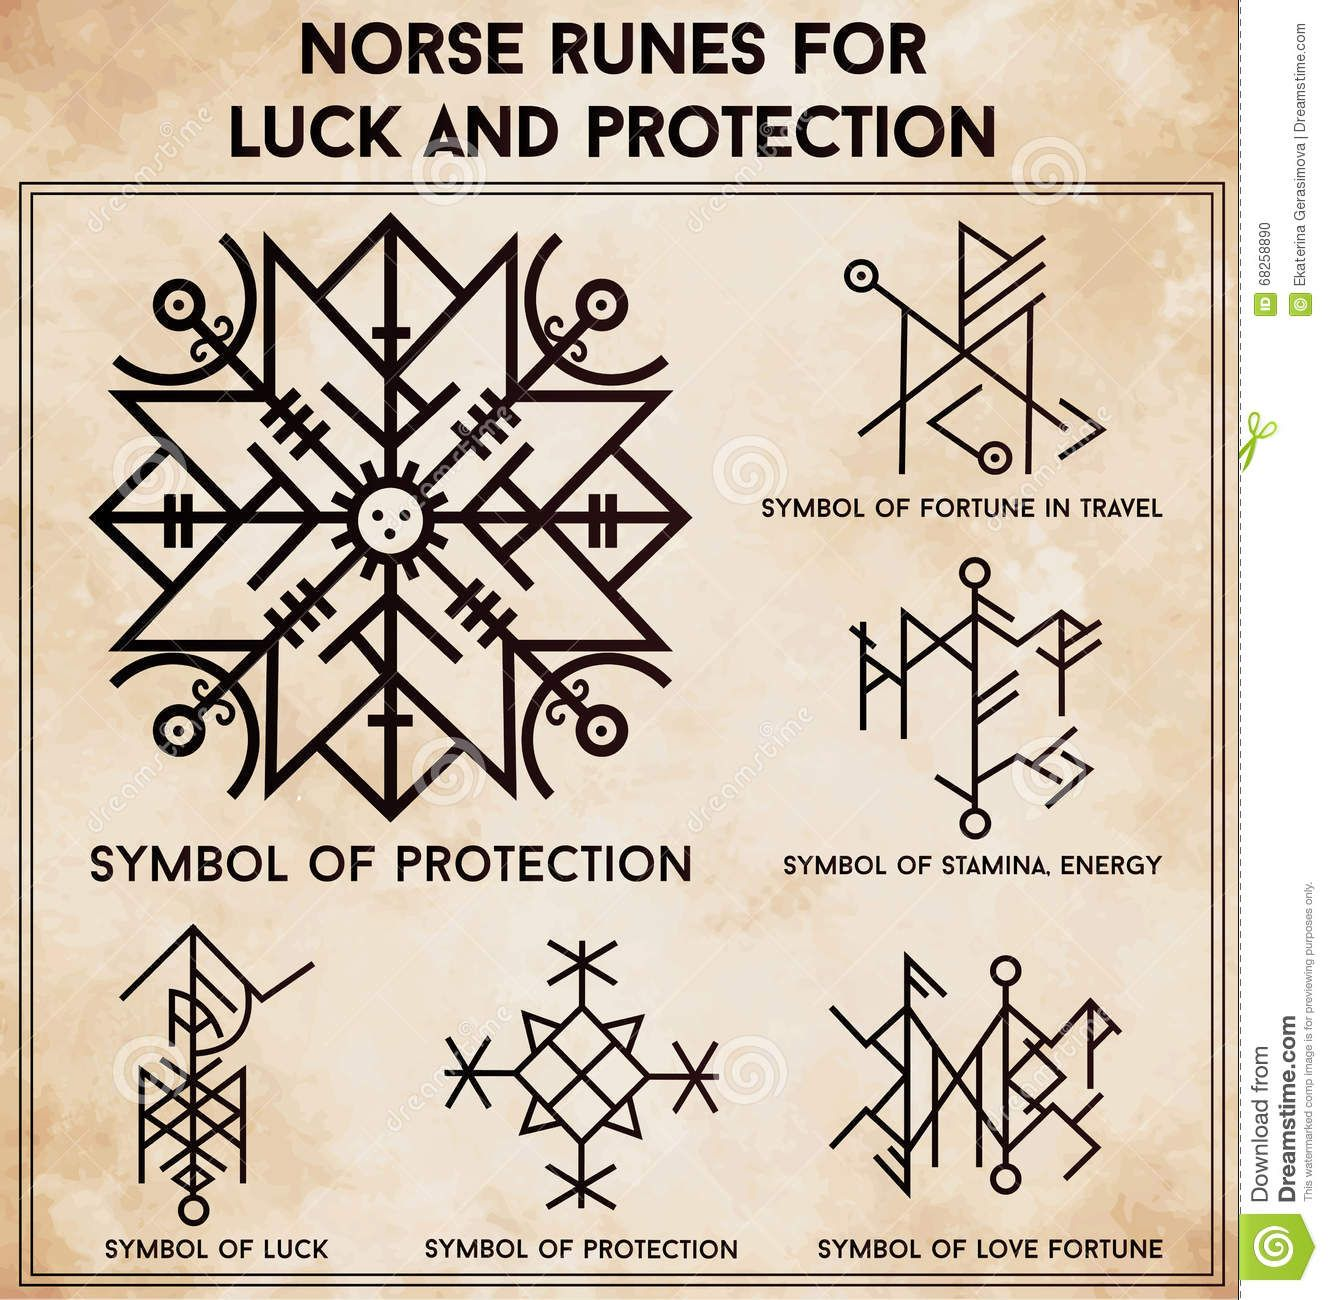 Druid protection symbols gallery symbol and sign ideas santeria protection symbols gallery symbol and sign ideas voodoo protection symbols image collections symbol and sign biocorpaavc